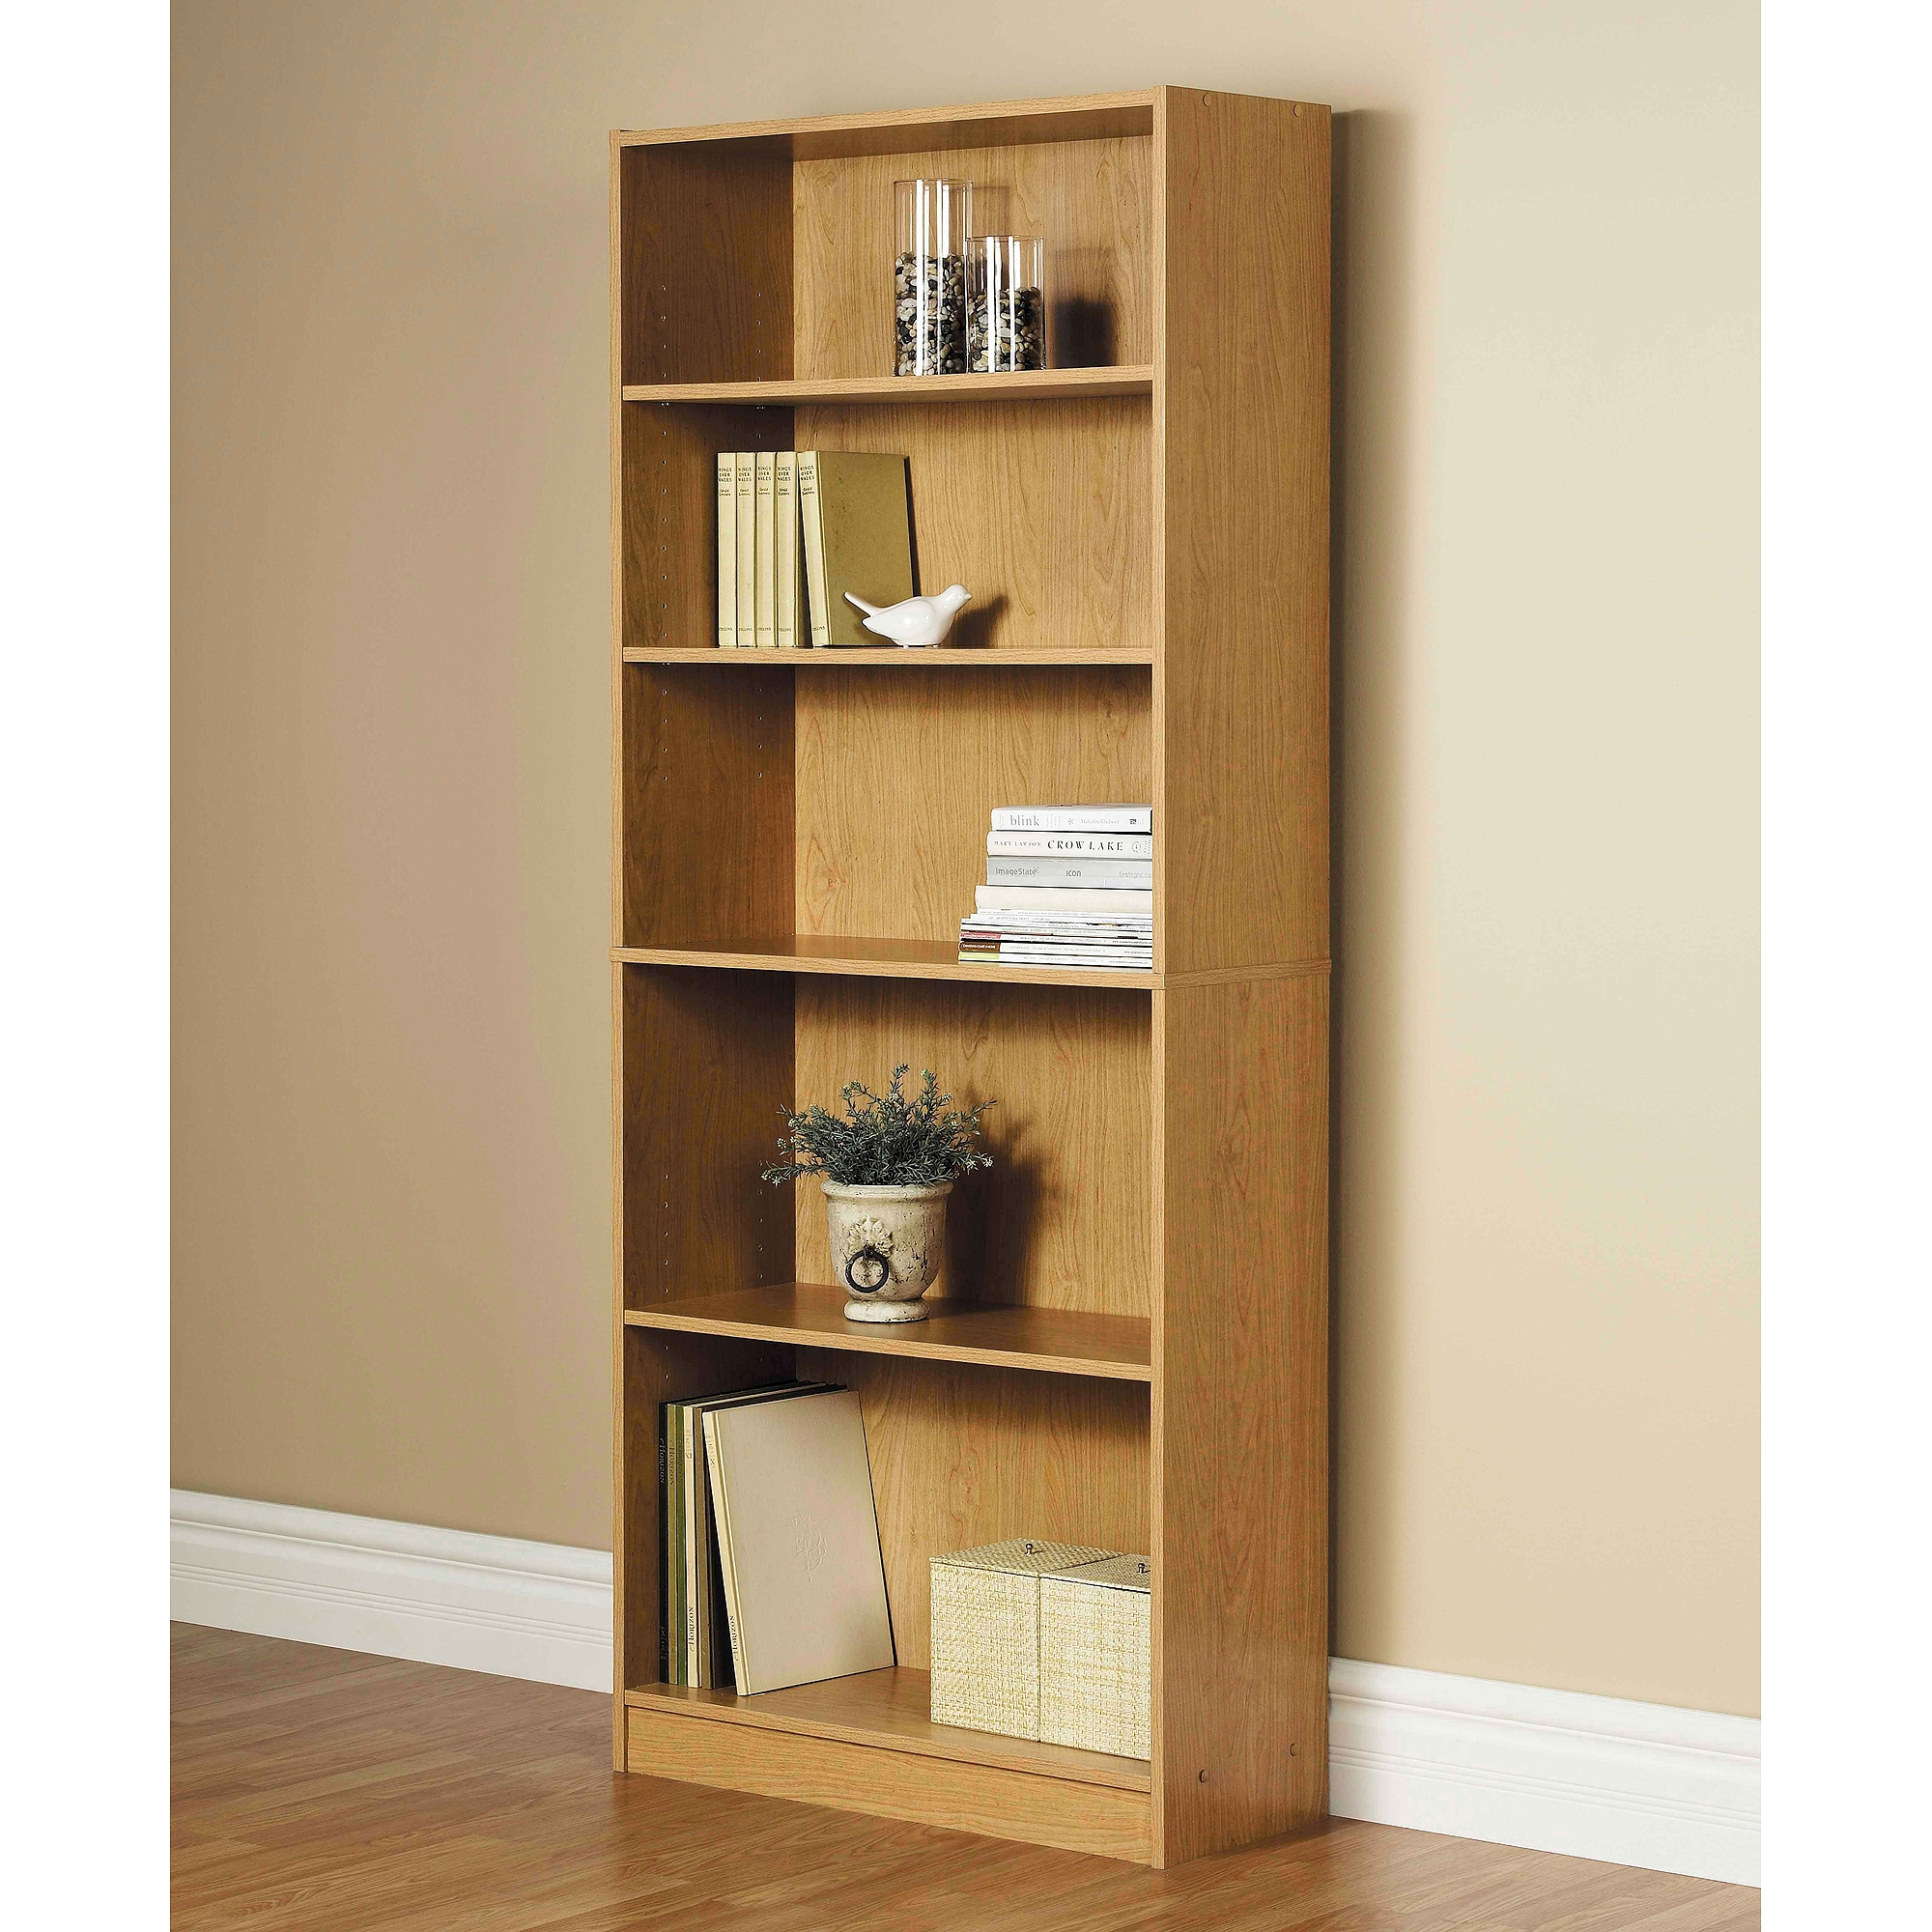 Solid Wood Bookcases Within Solid Wood Bookcases (View 12 of 15)